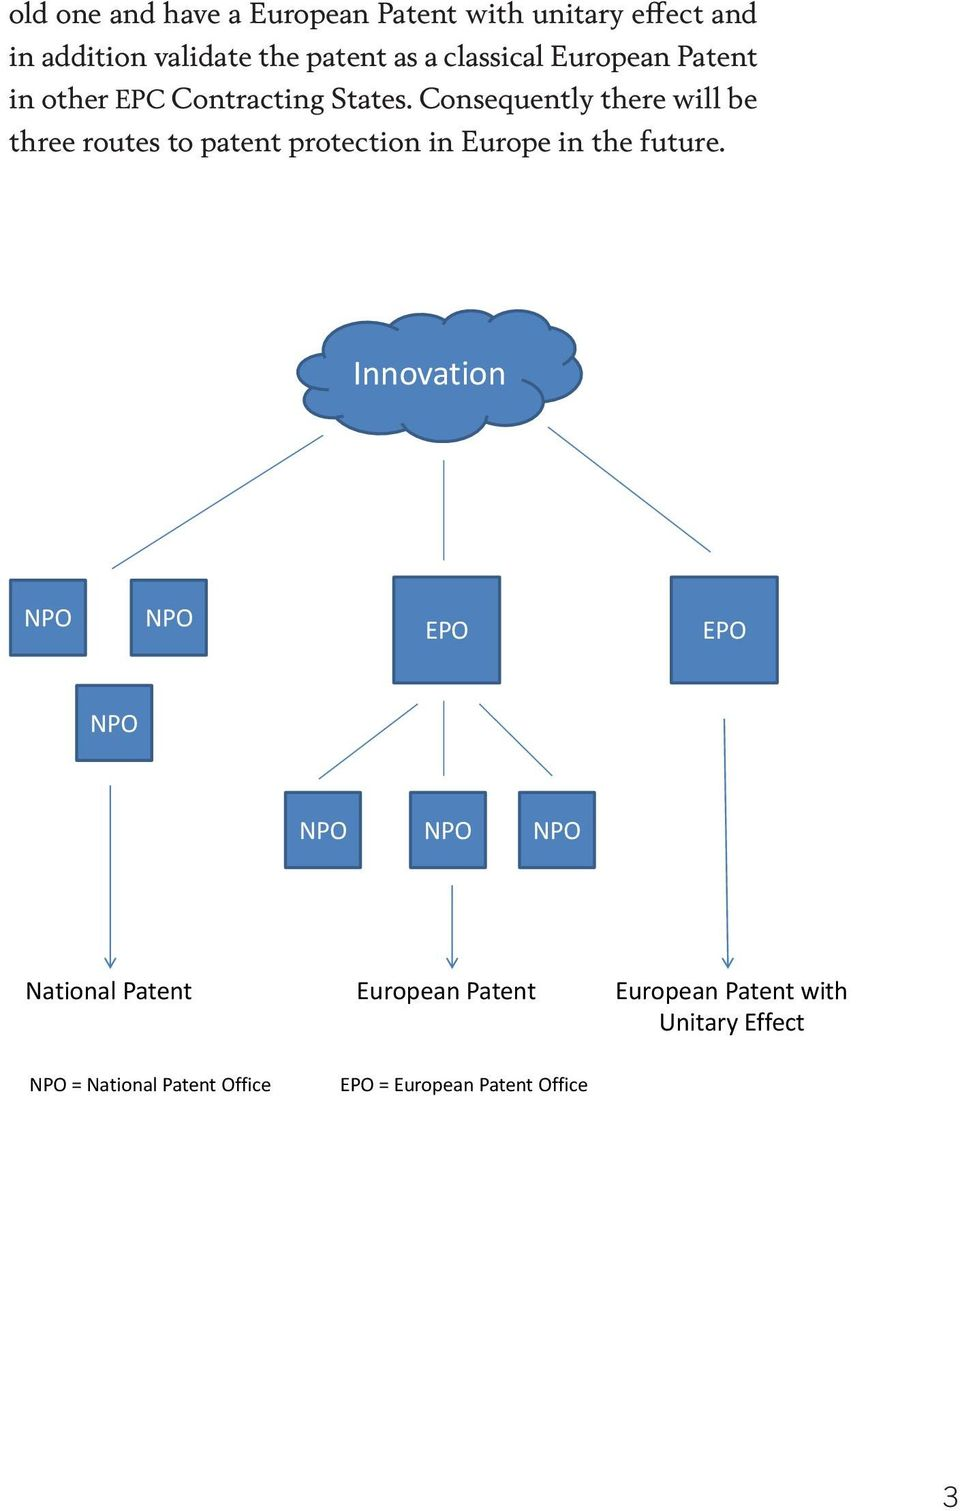 Consequently there will be three routes to patent protection in Europe in the future.